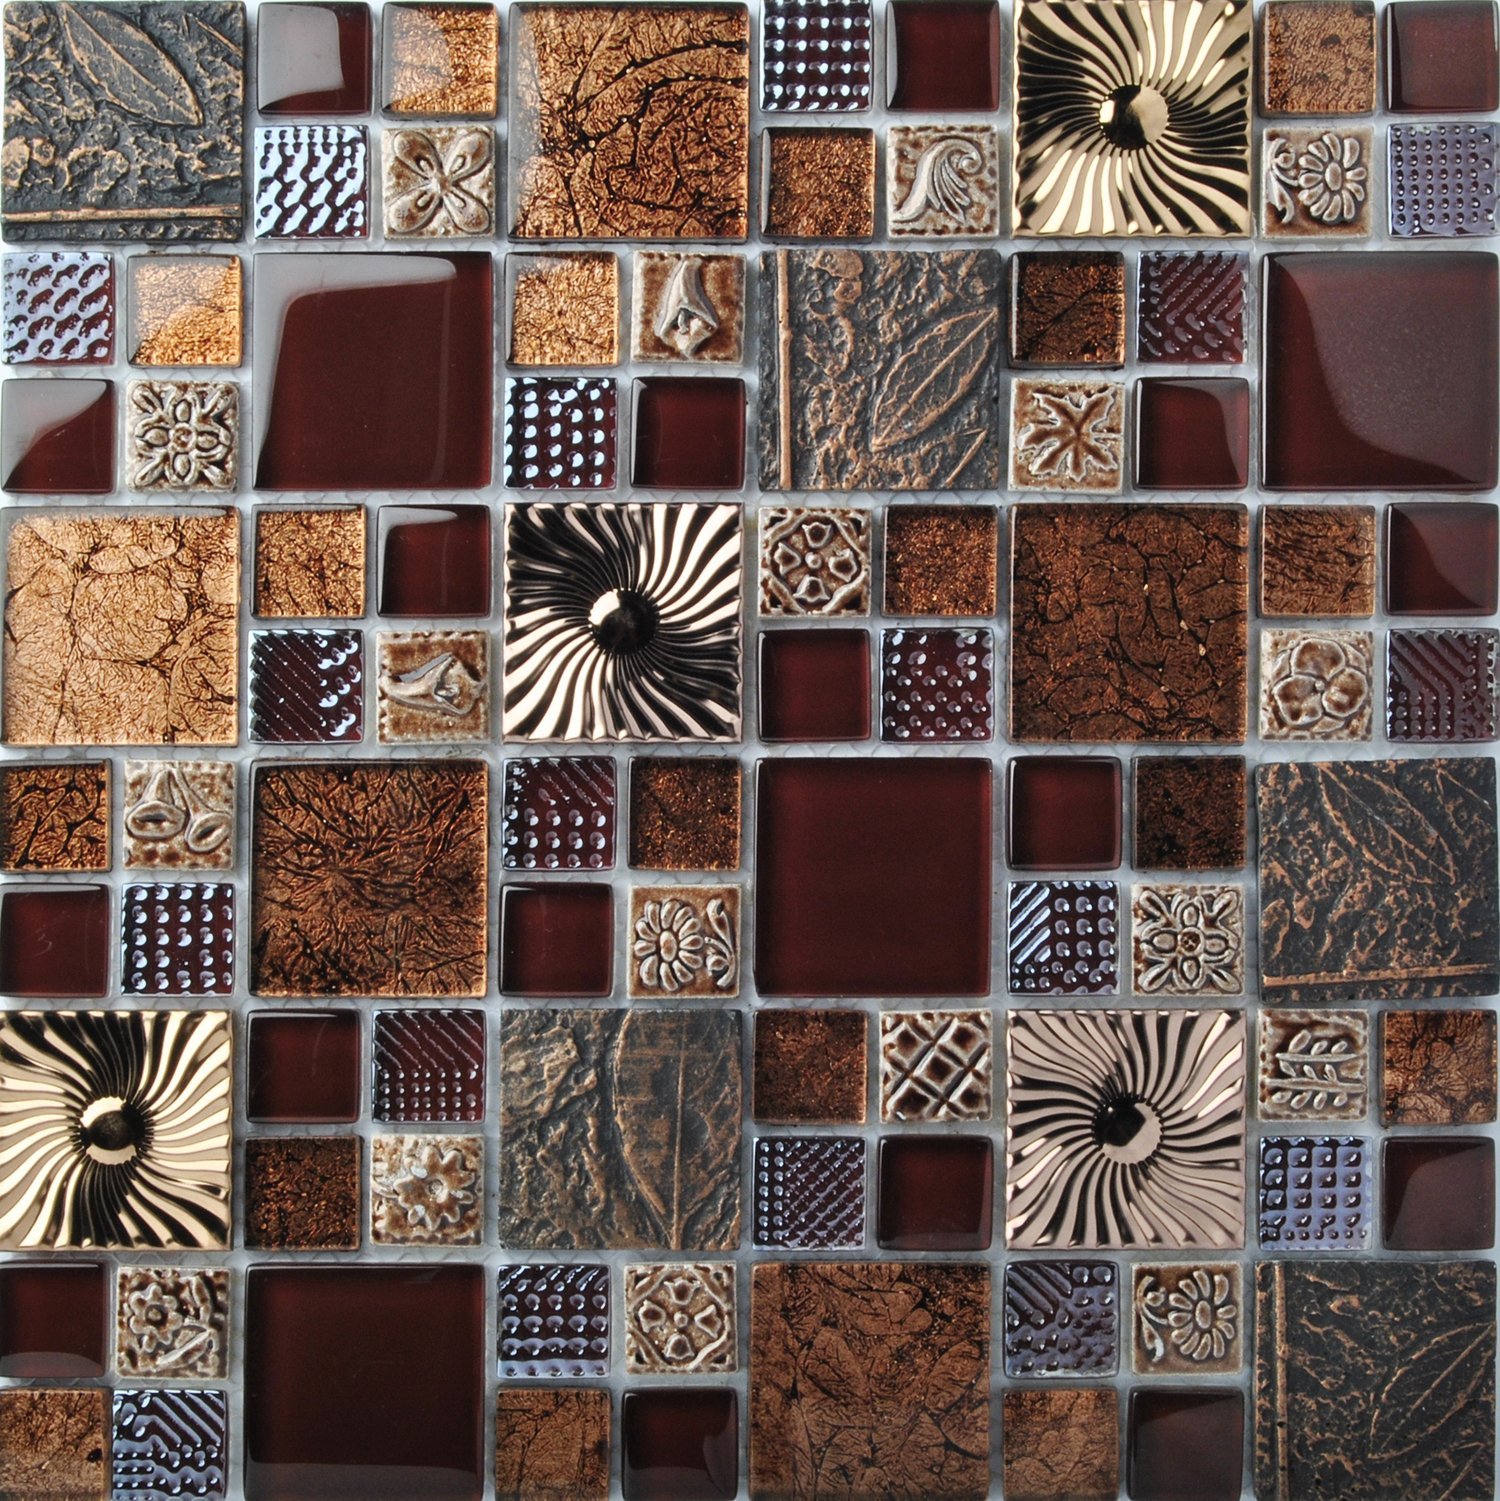 Special Carving Mosaic Art Accent Tile Red Brown Color Glass Wall Backsplash Tiles Rose Gold Metal Kitchen Bath Walls Decor TSTFLY16 (1 Sample [6'' X 6'']) by TST MOSAIC TILES